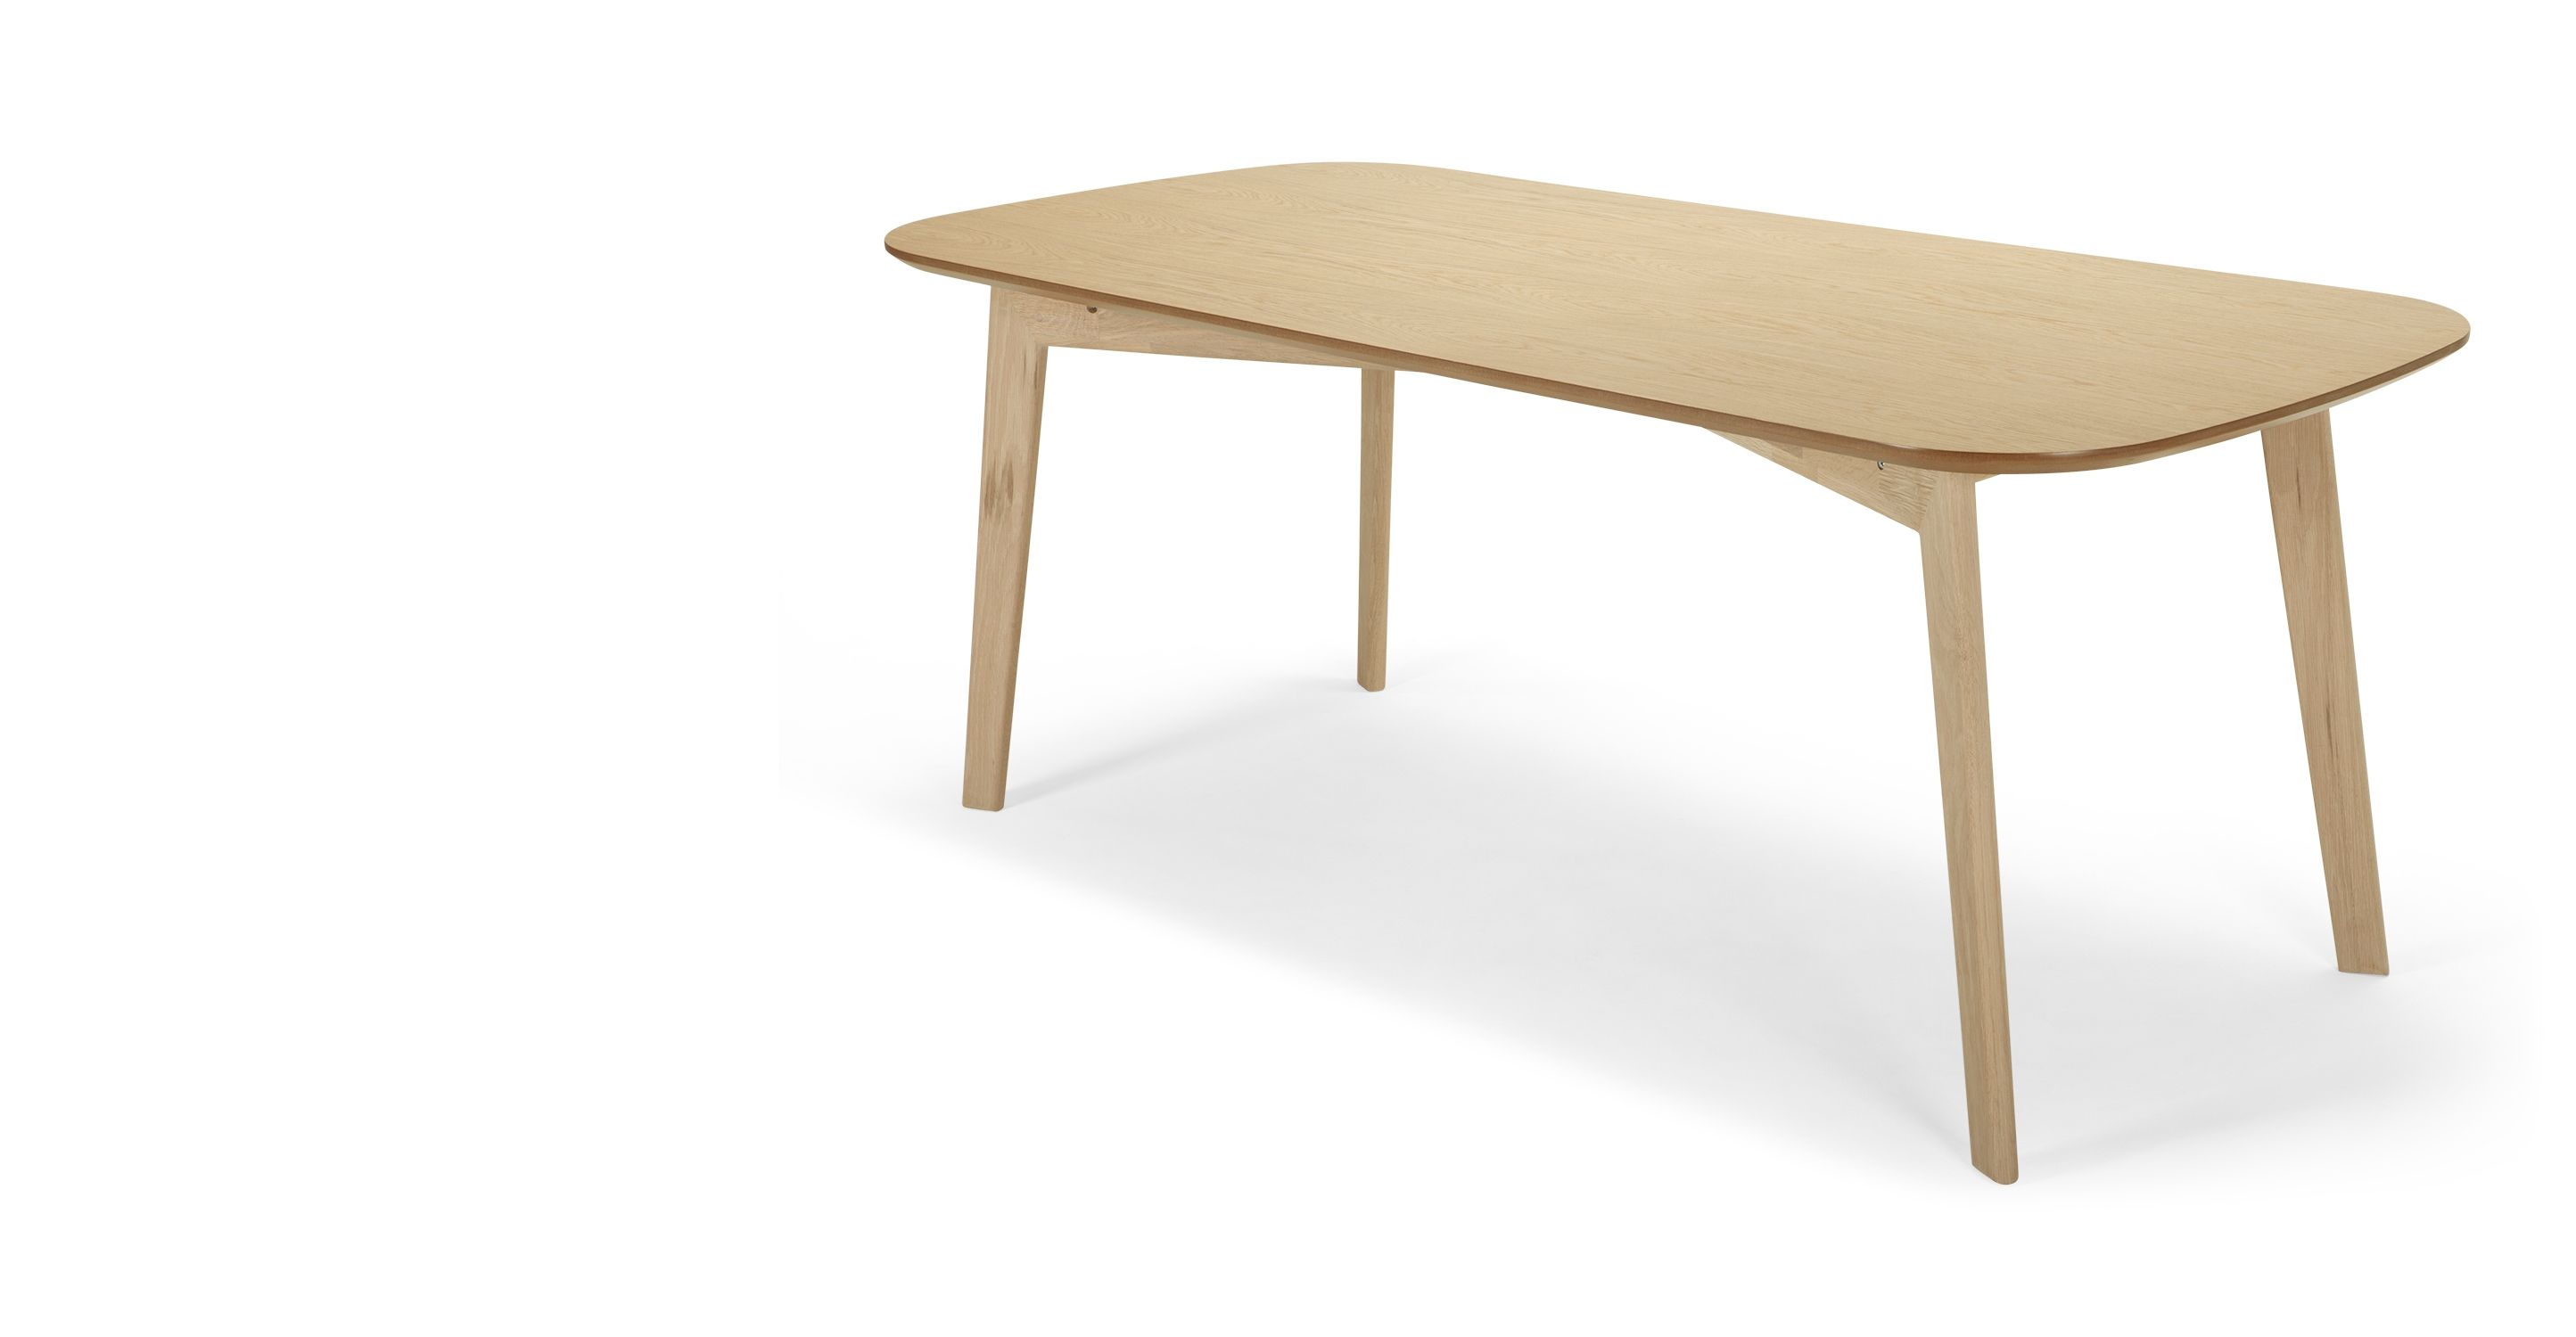 Dante dining table oak made dining tables and chairs dante dining table oak made geotapseo Gallery